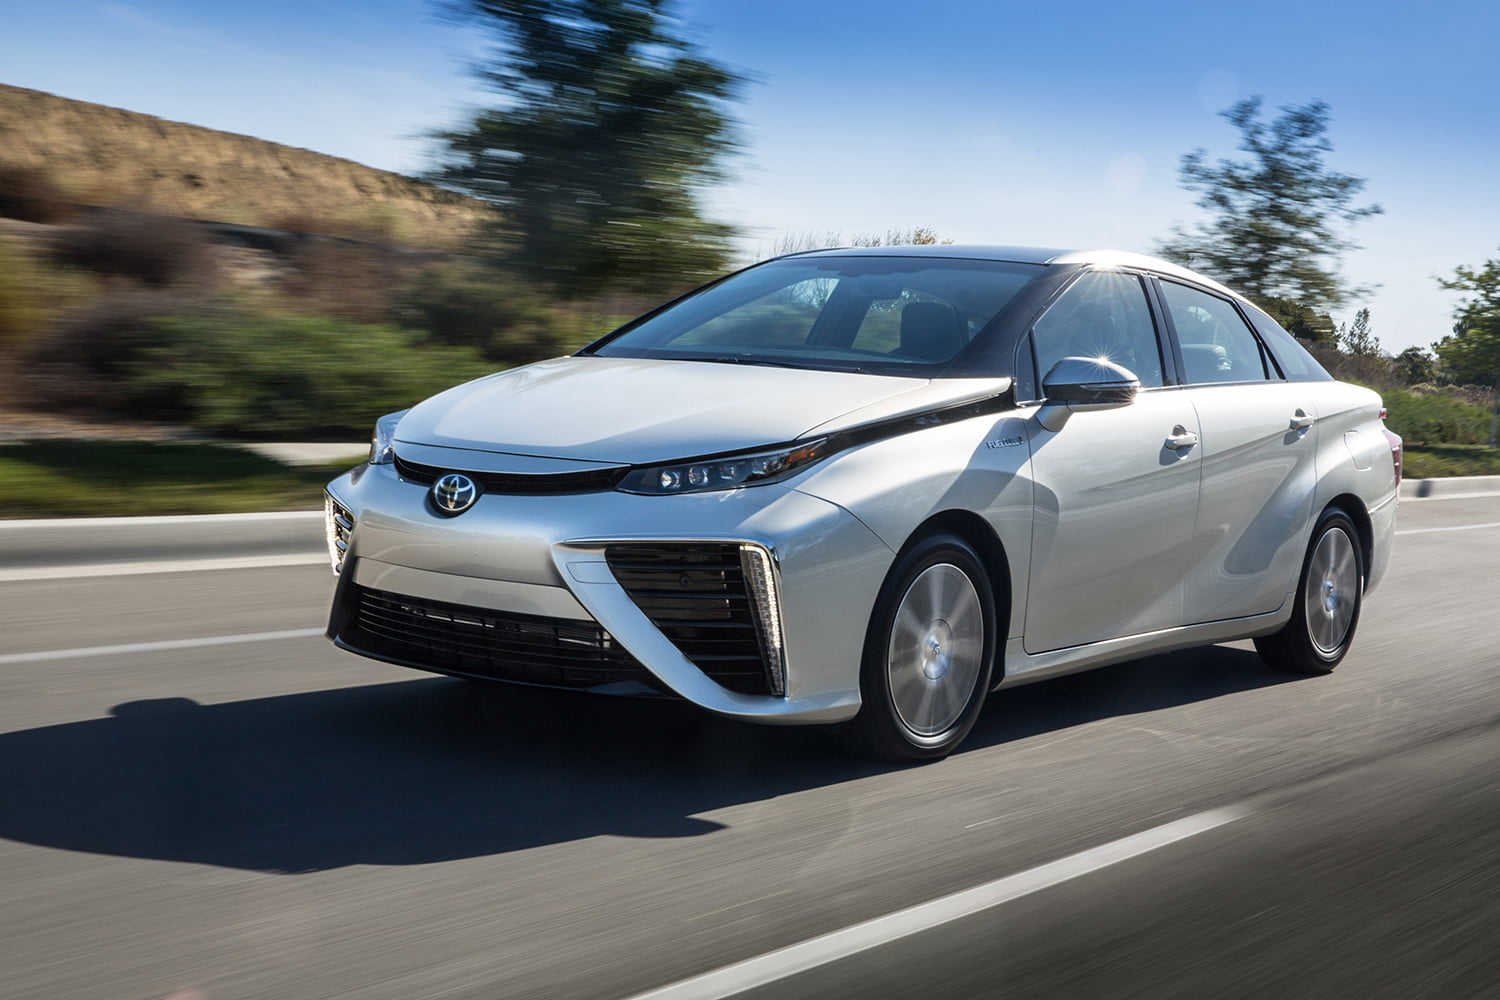 Redesigned Toyota Mirai Fuel Cell Car Launching In 2020